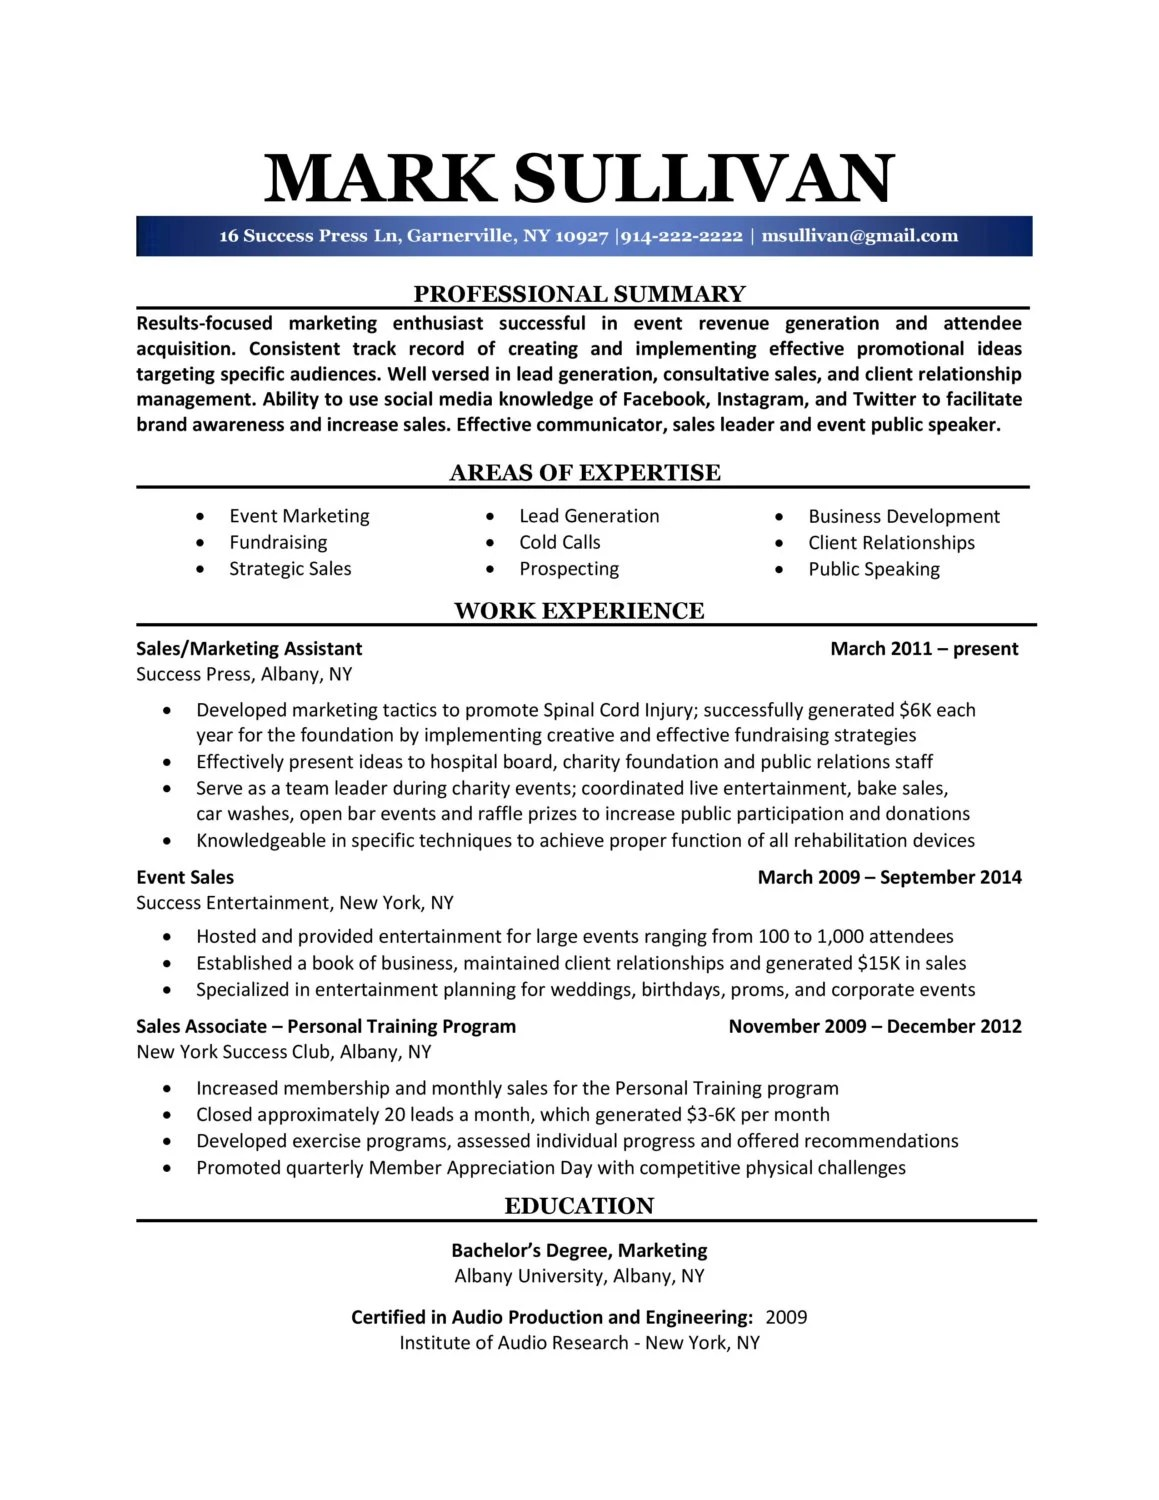 Professional Resume Writing Resume Help Job Search Etsy